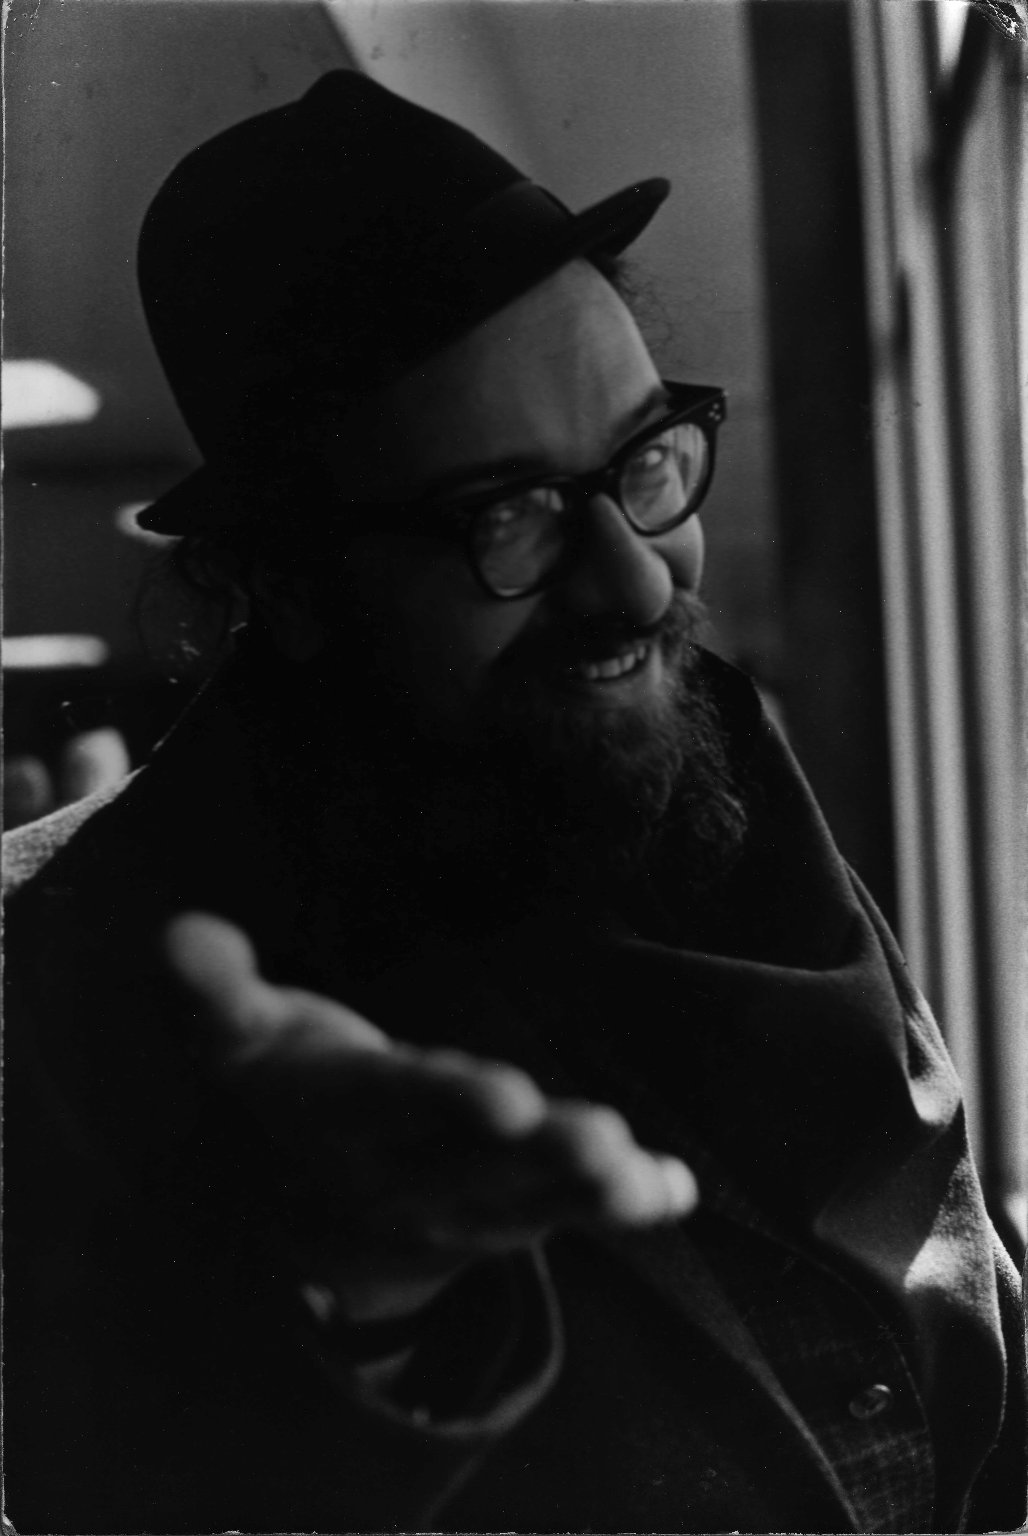 Rabbi Zalman Schachter in black hat posing playfully, extending a hand, ca. 1965.